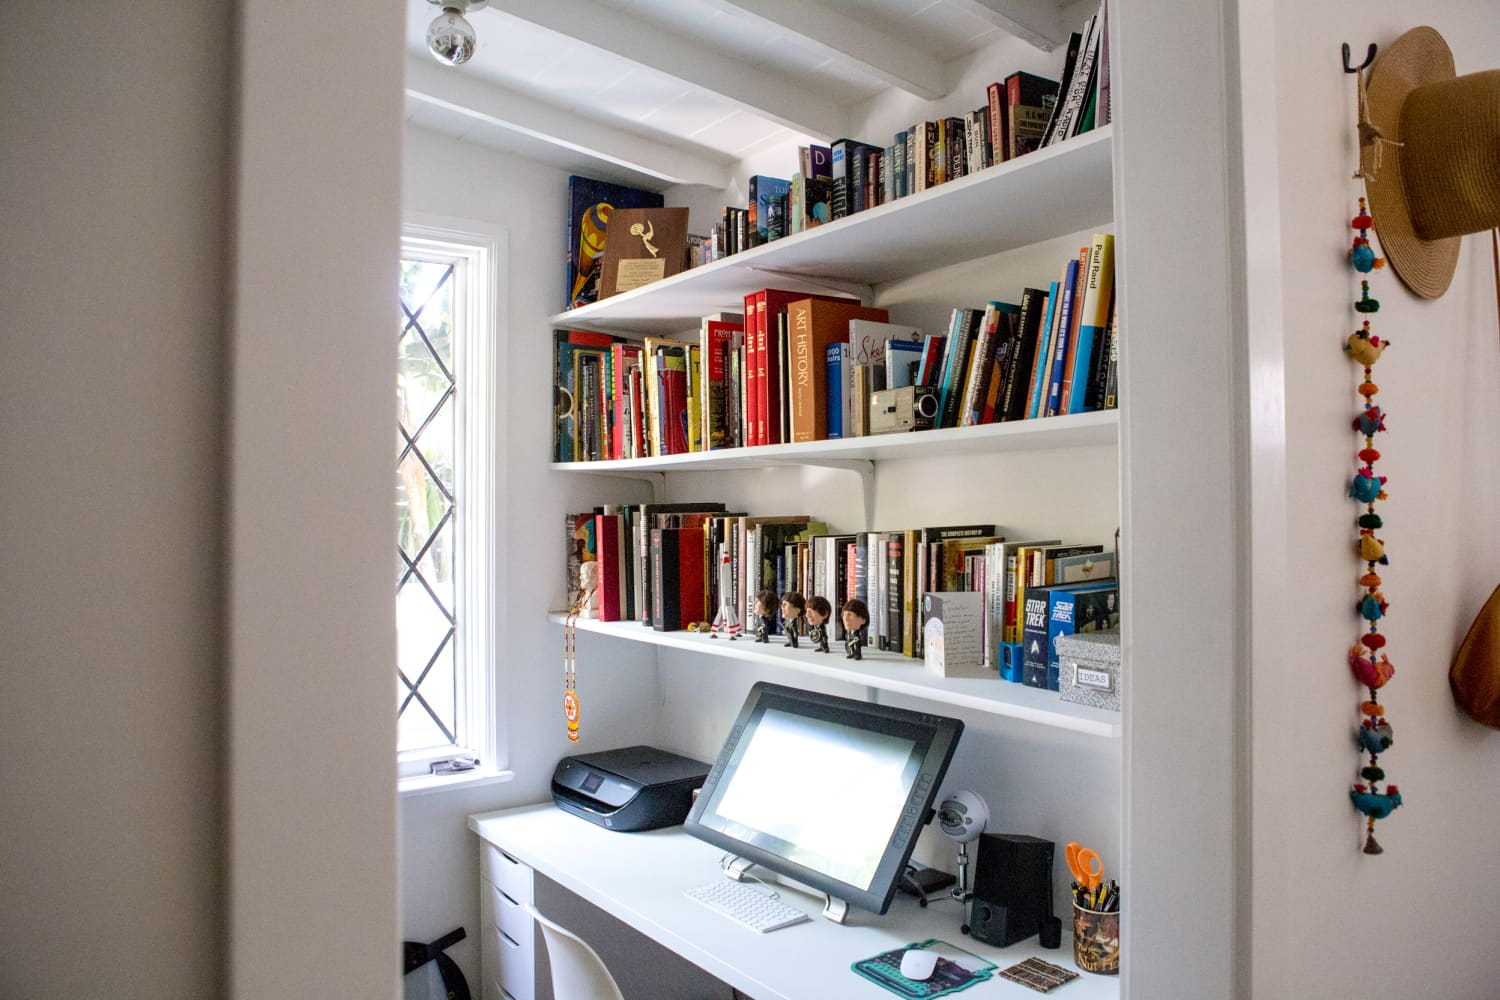 The Smartest Ways to Carve Out a Home Office in a Small Space